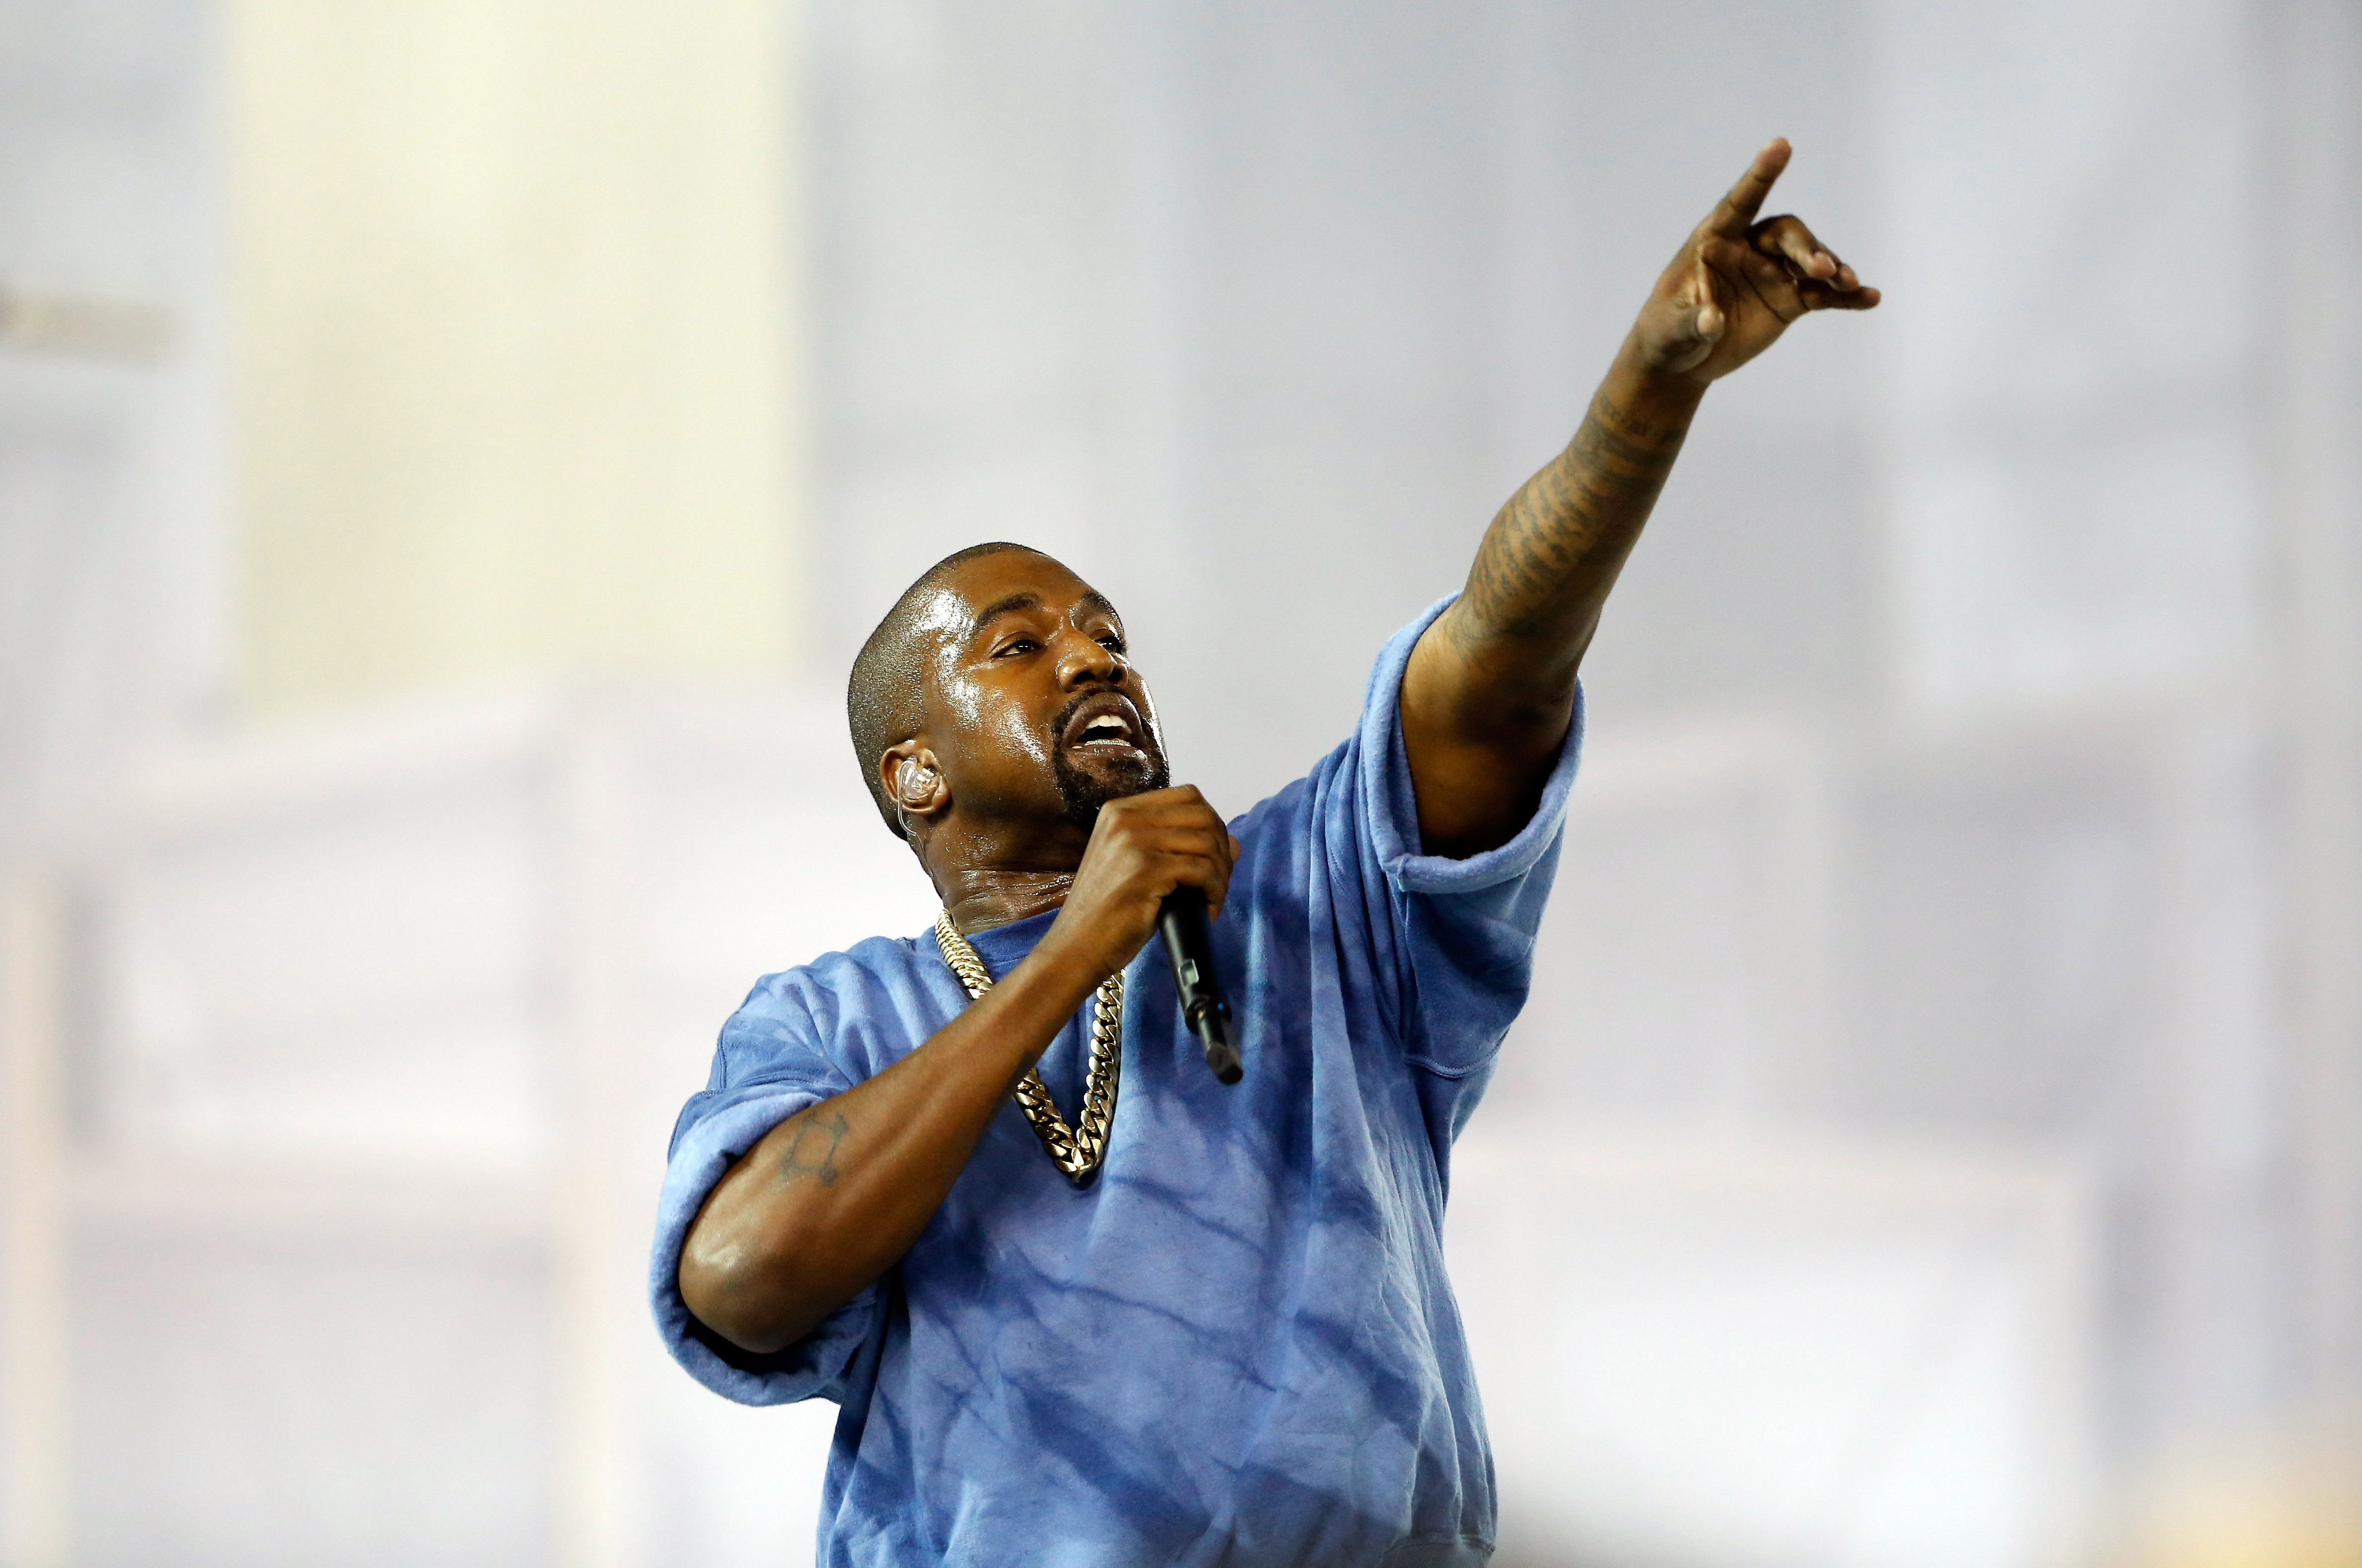 Kanye West preforms during the closing ceremony on Day 16 of the Toronto 2015 Pan Am Games on July 26, 2015 in Toronto.